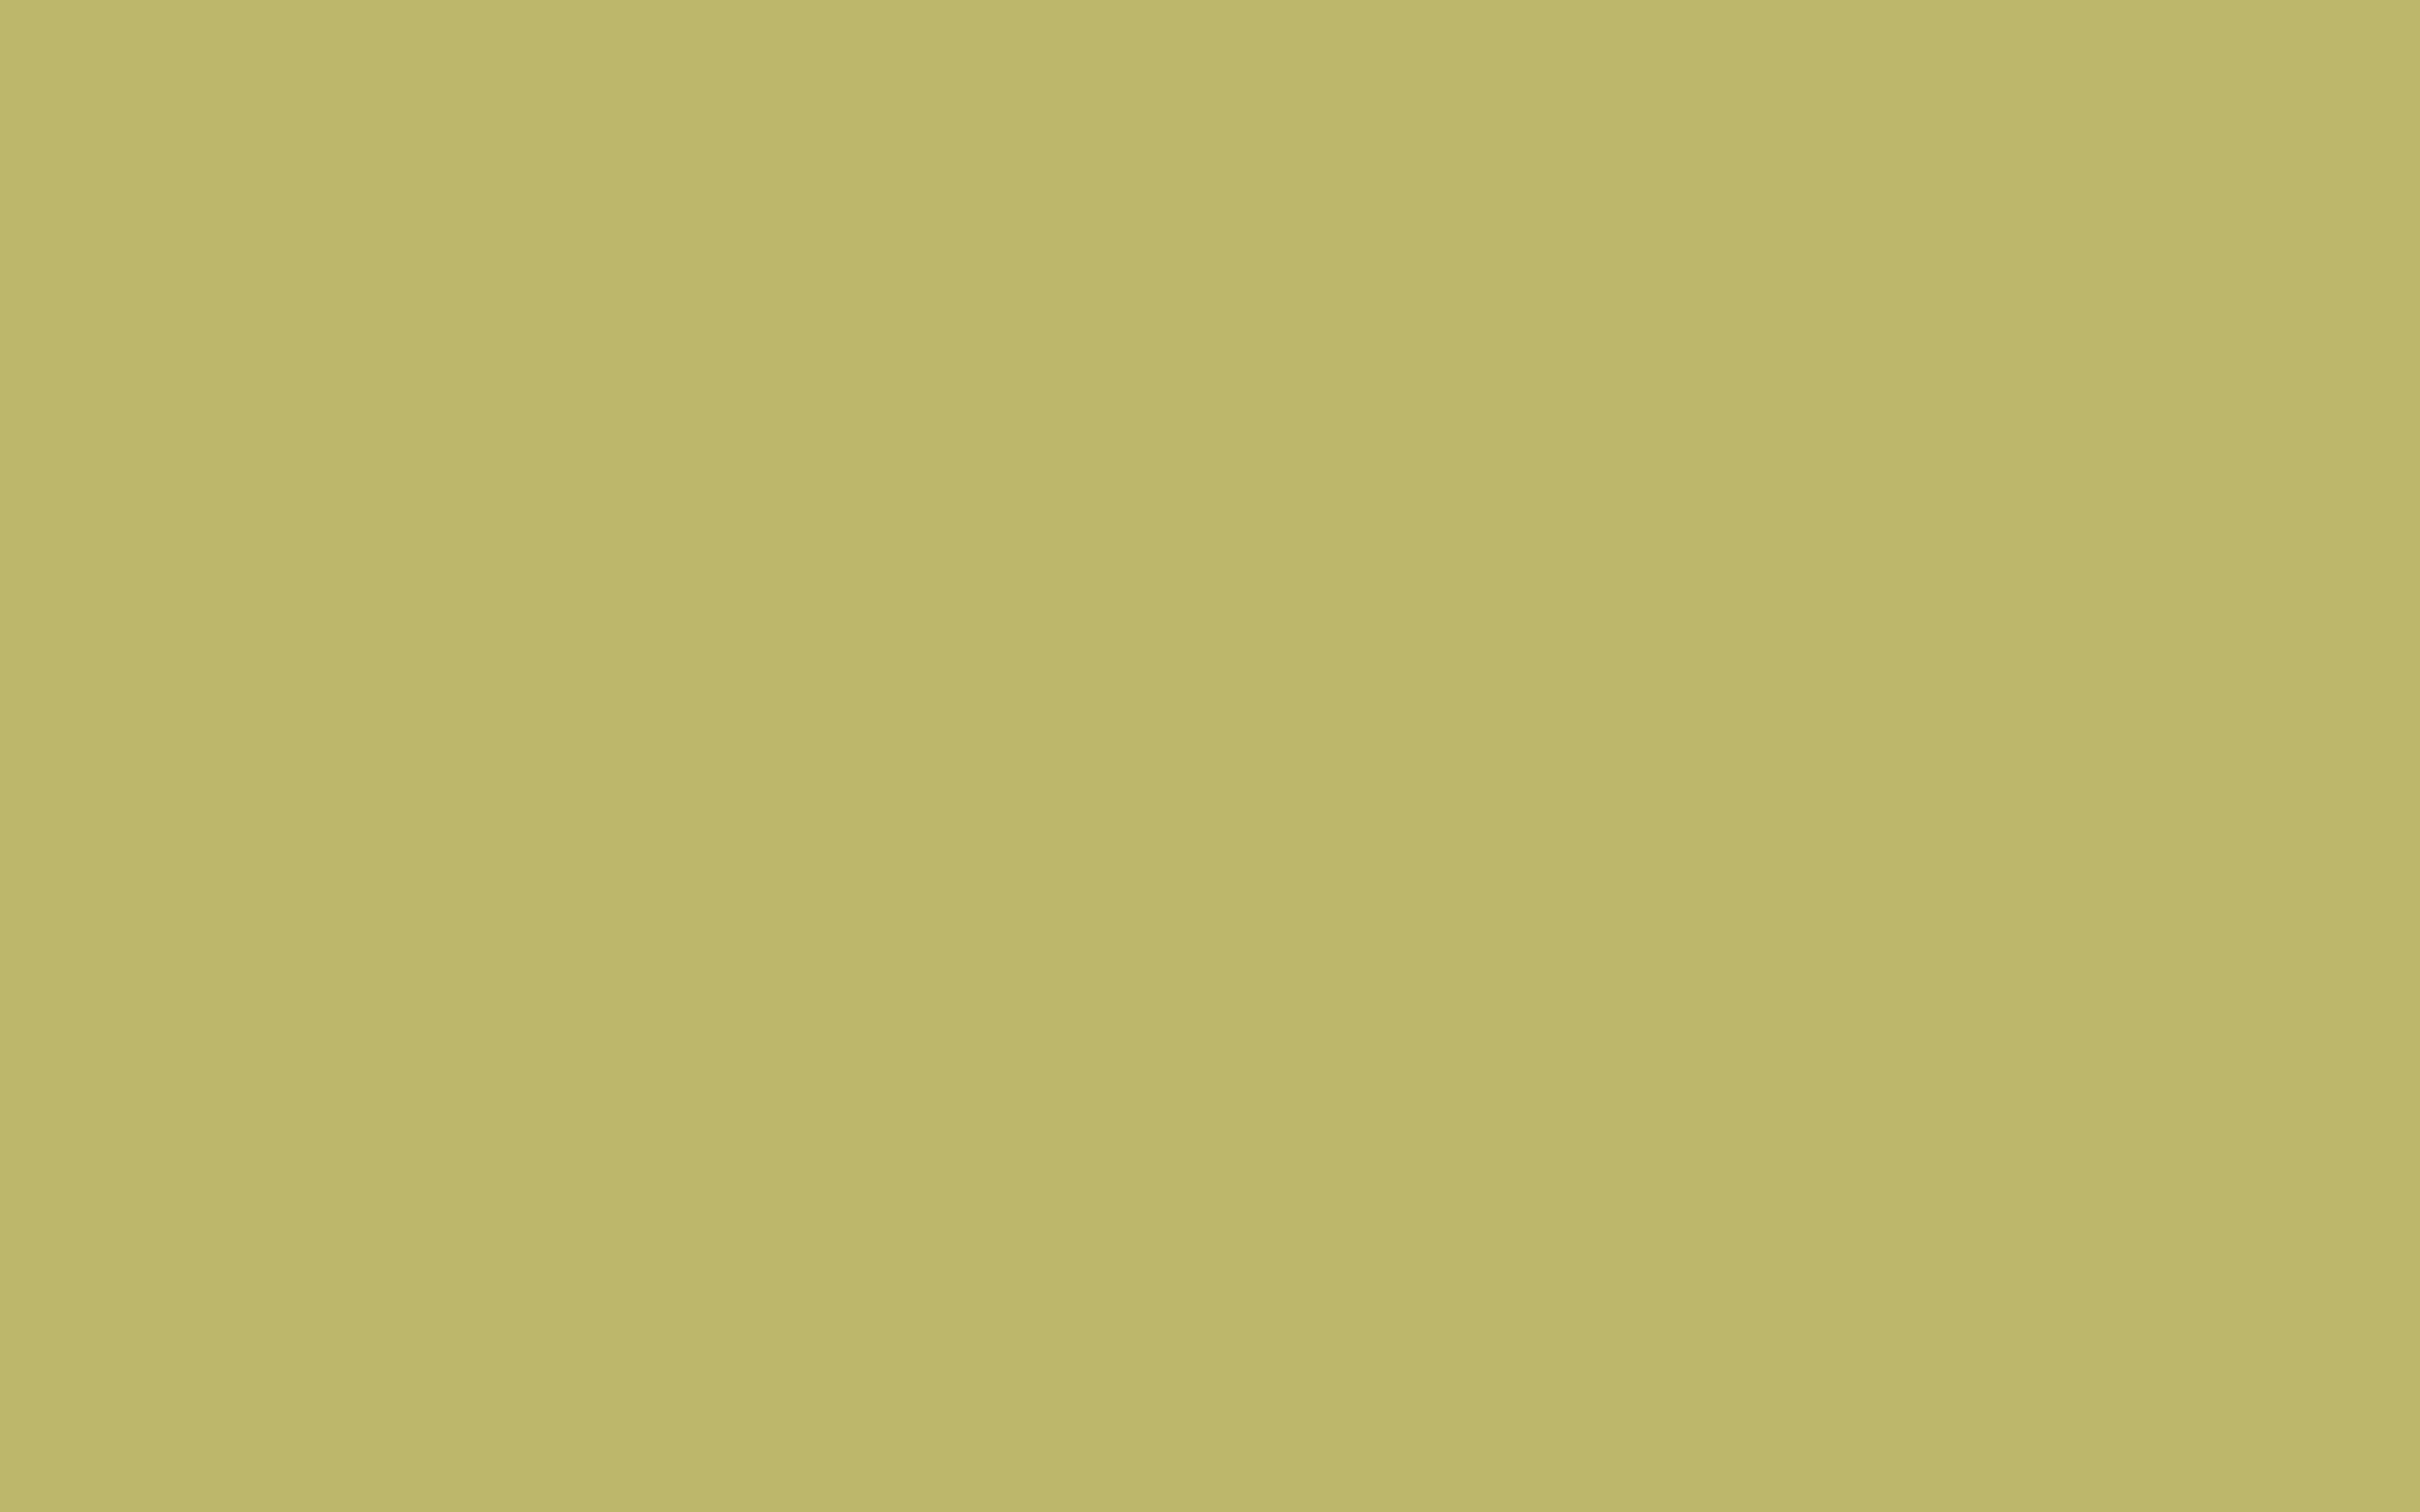 2880x1800 Dark Khaki Solid Color Background